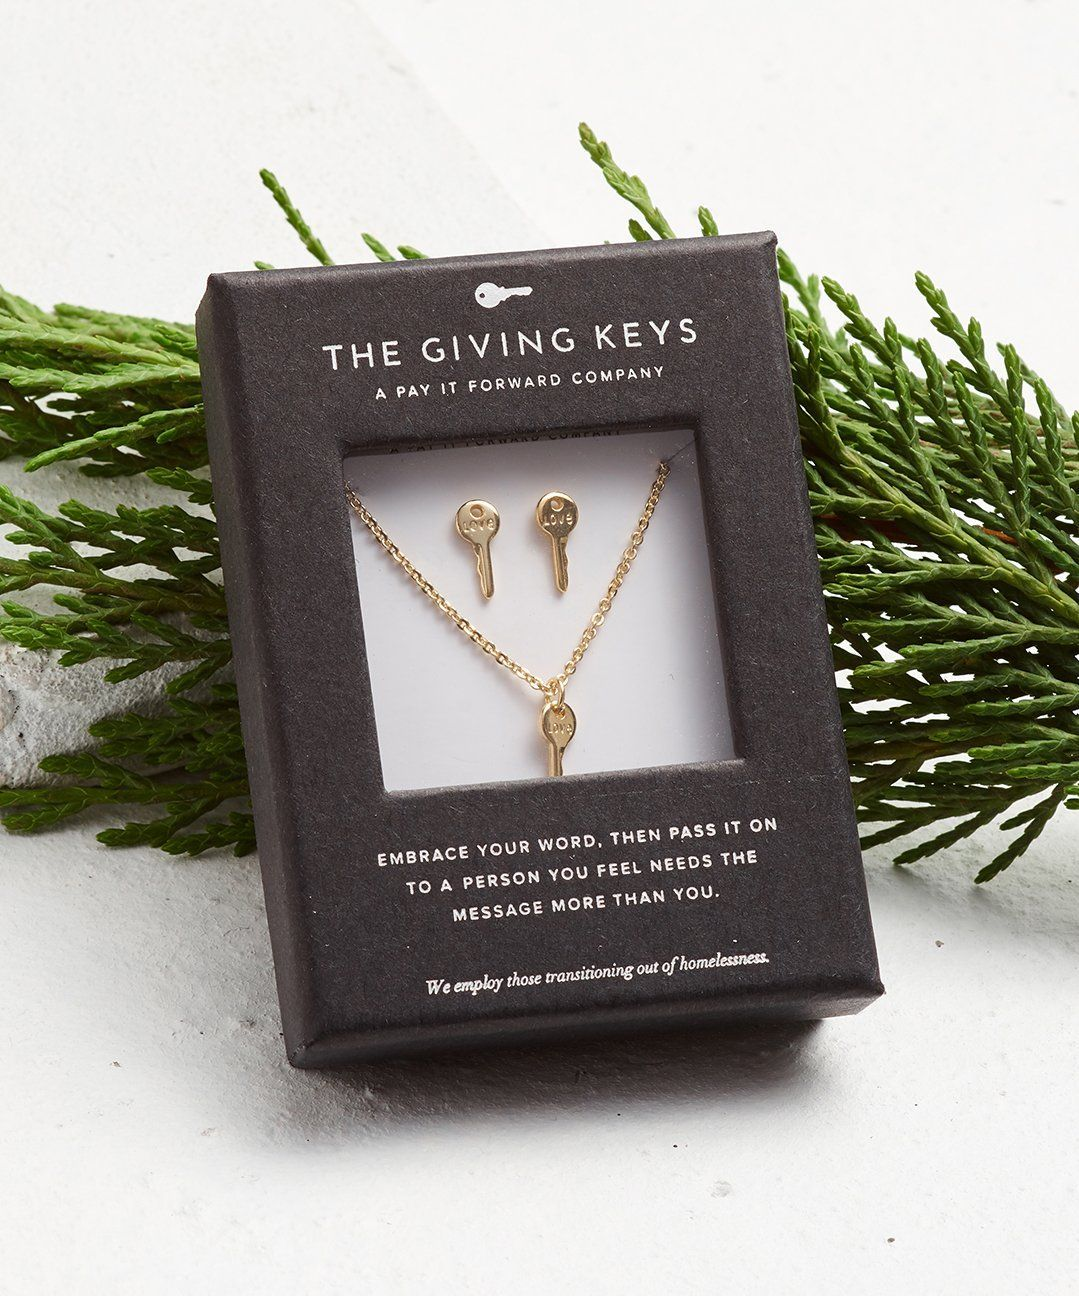 Mini Key Gift Set Necklaces The Giving Keys LOVE Gold